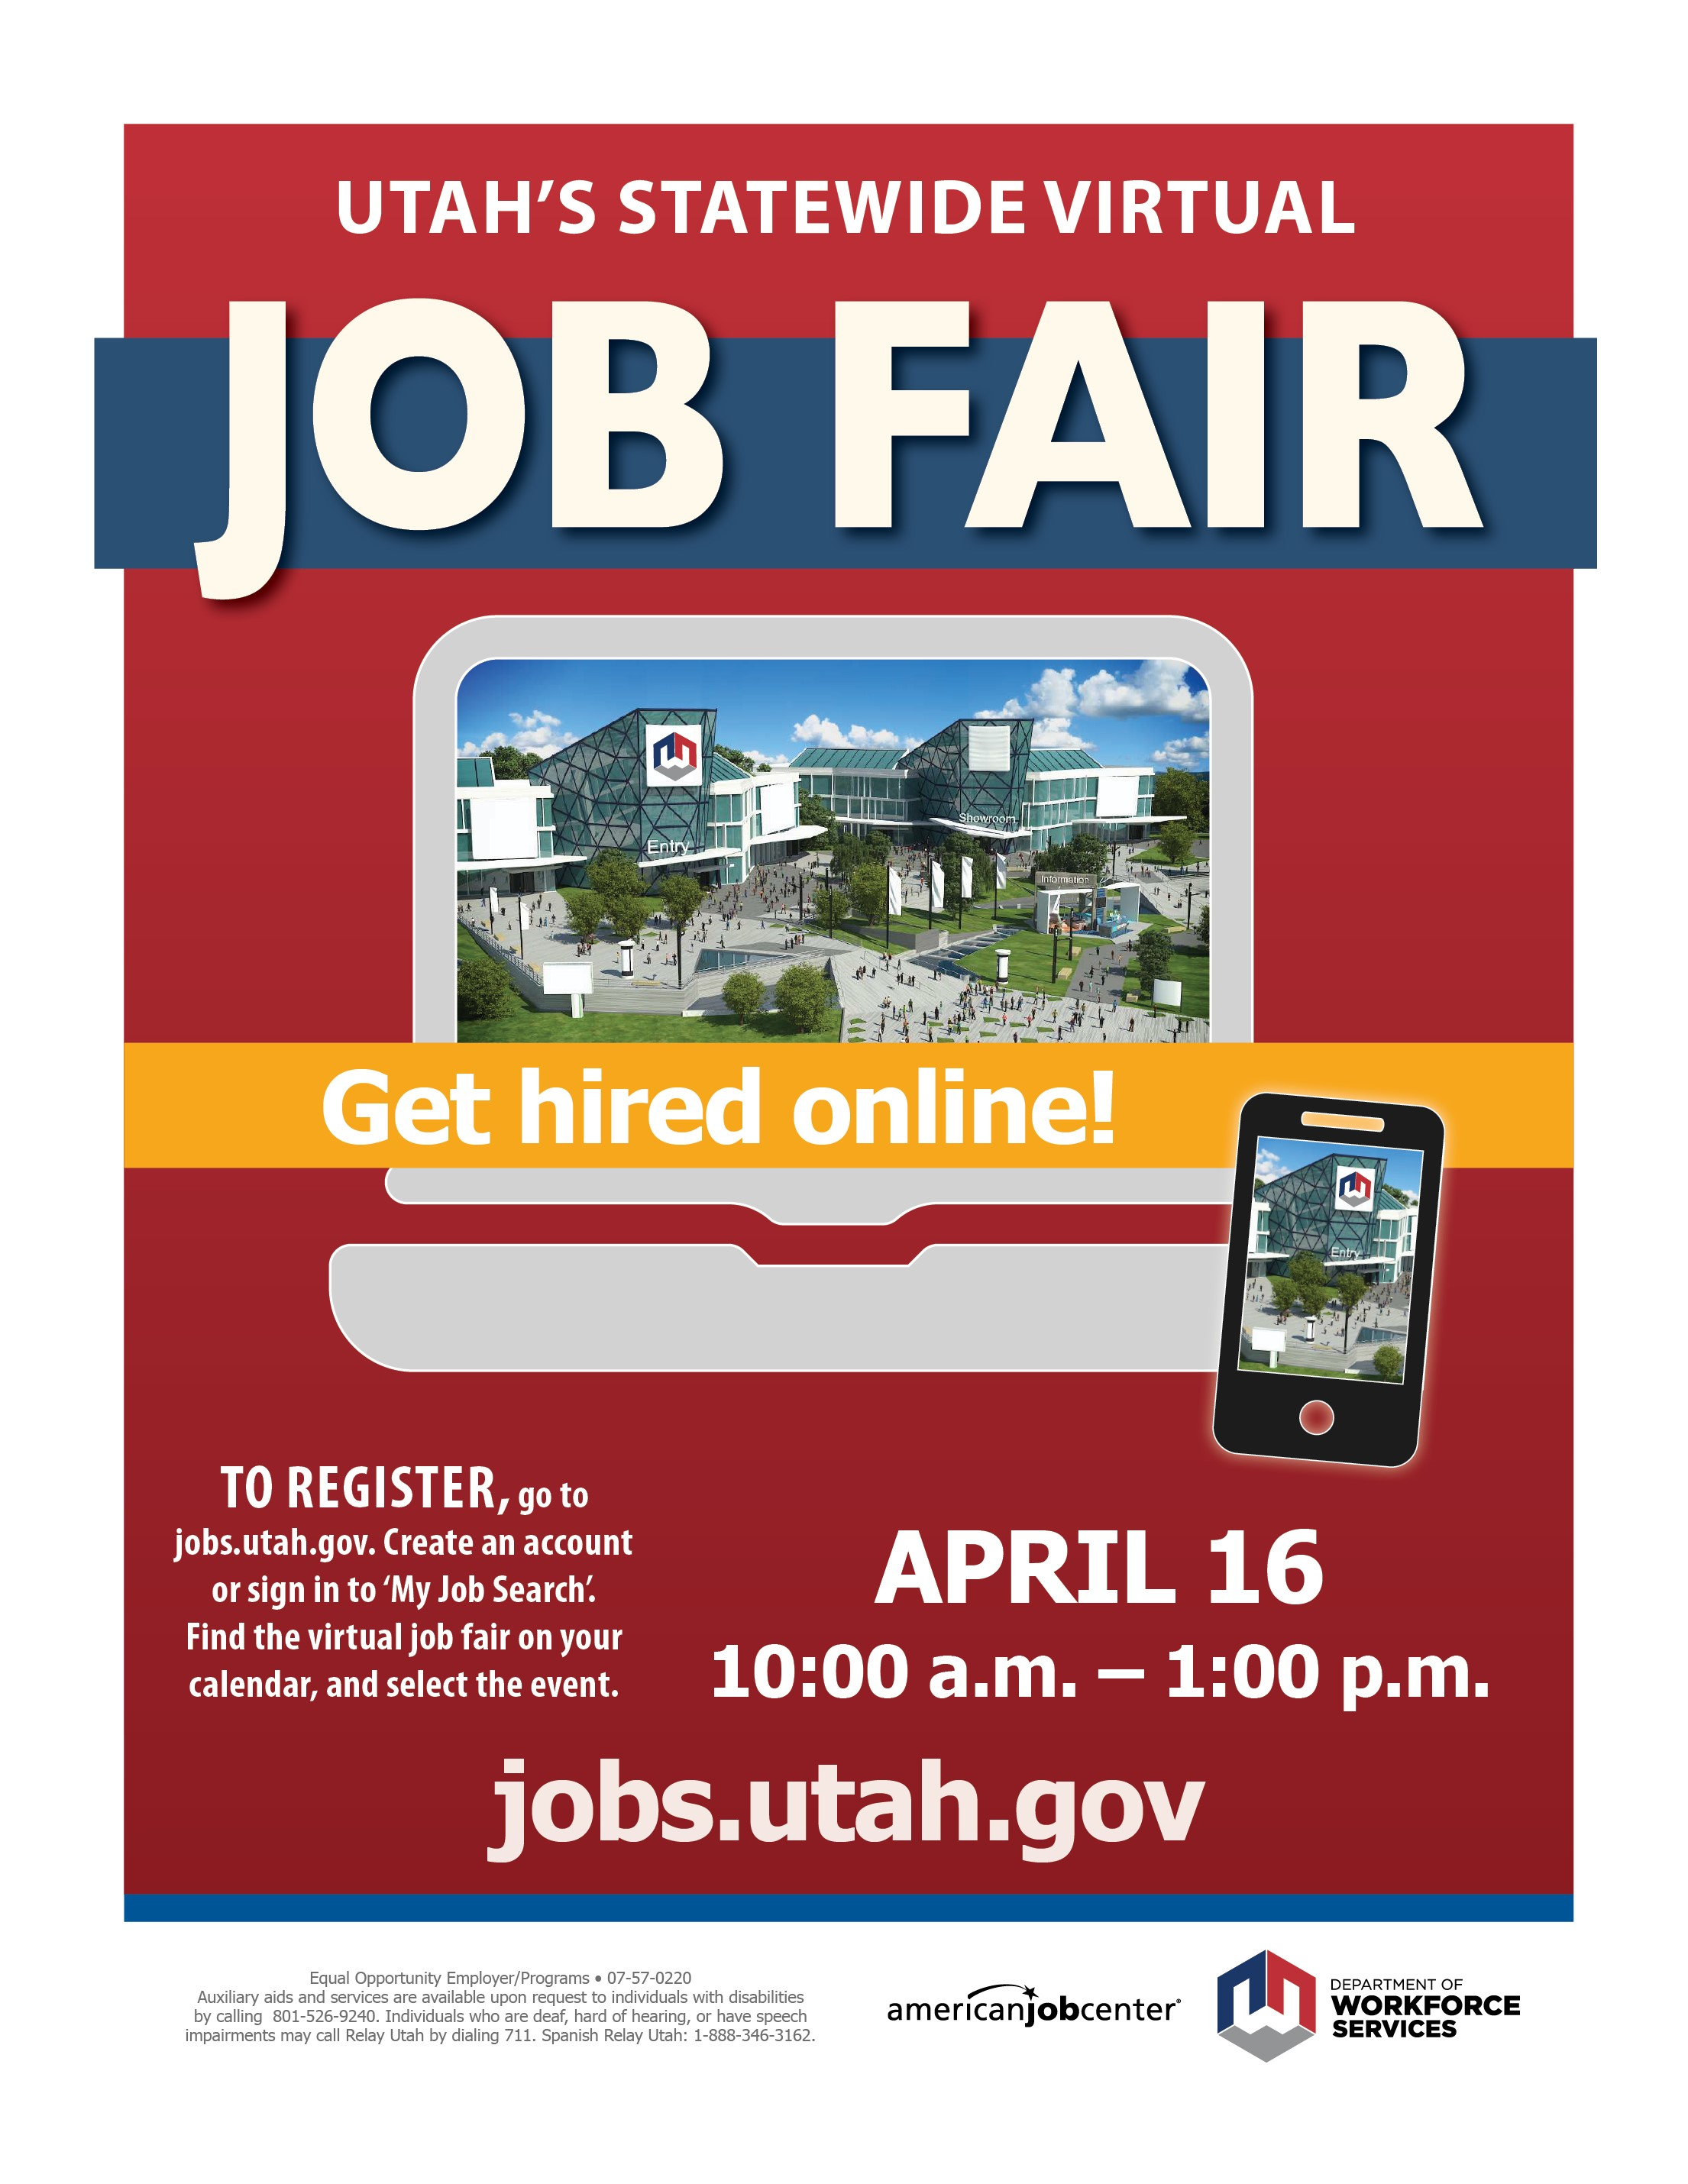 Utah's Statewide Virtual Job Fair 2020